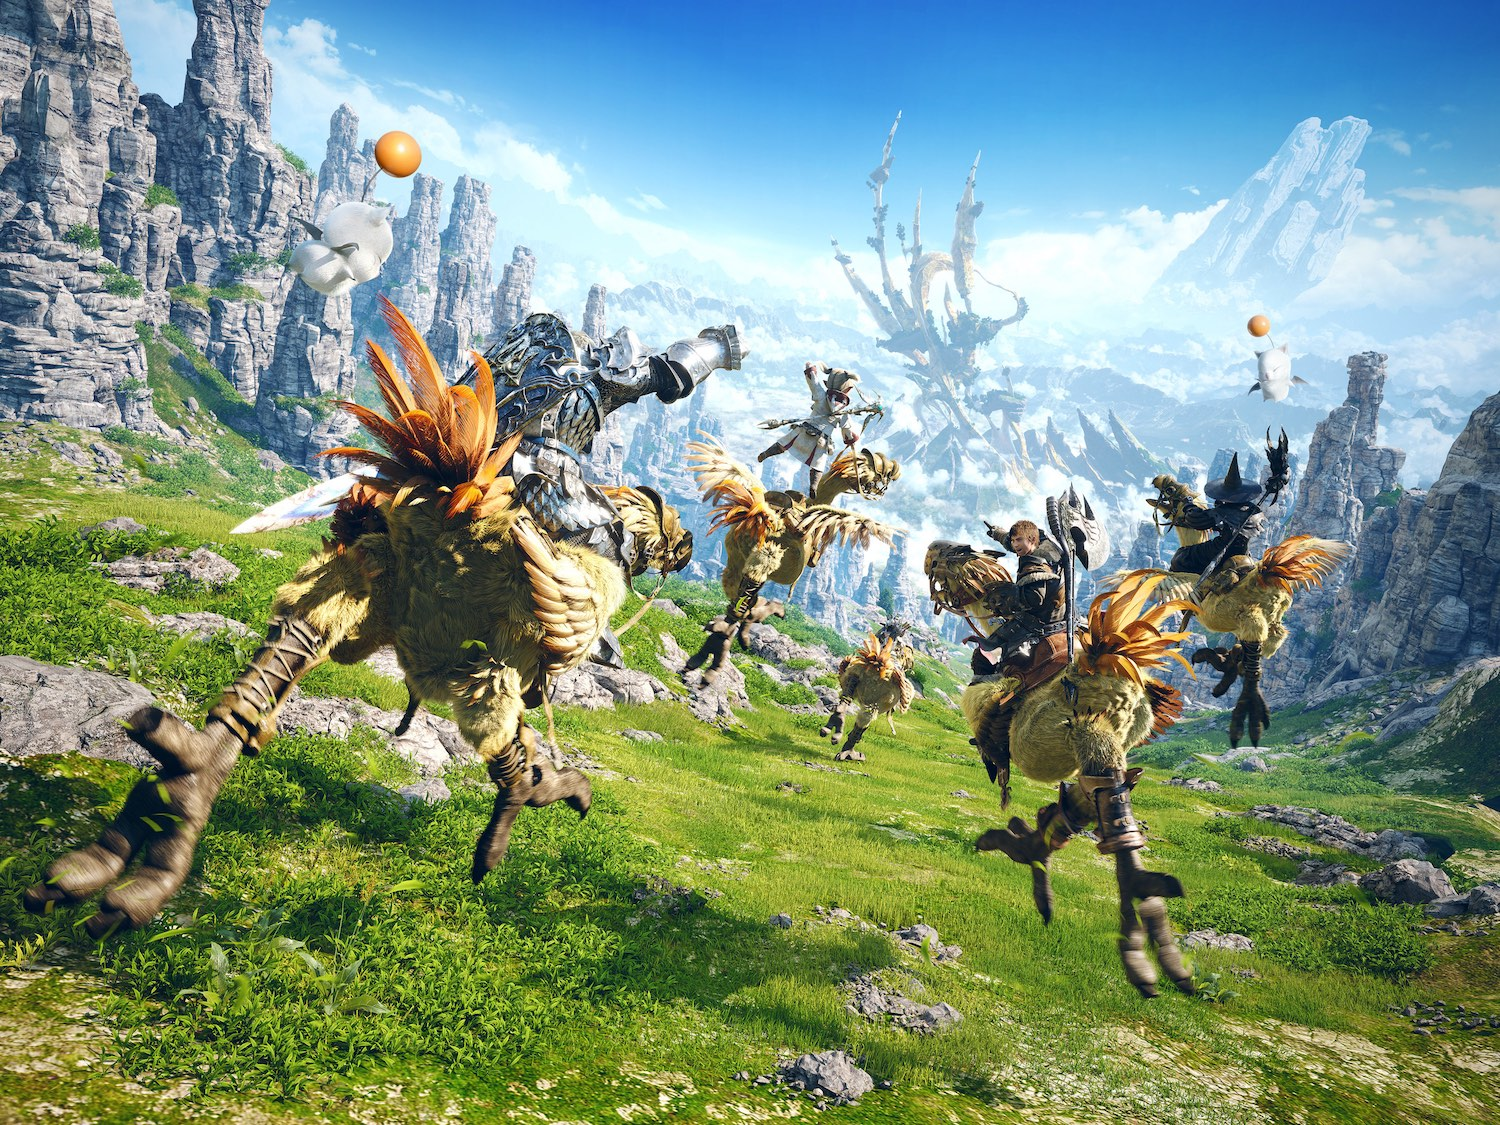 Final Fantasy XIV being developed into a live-action TV series